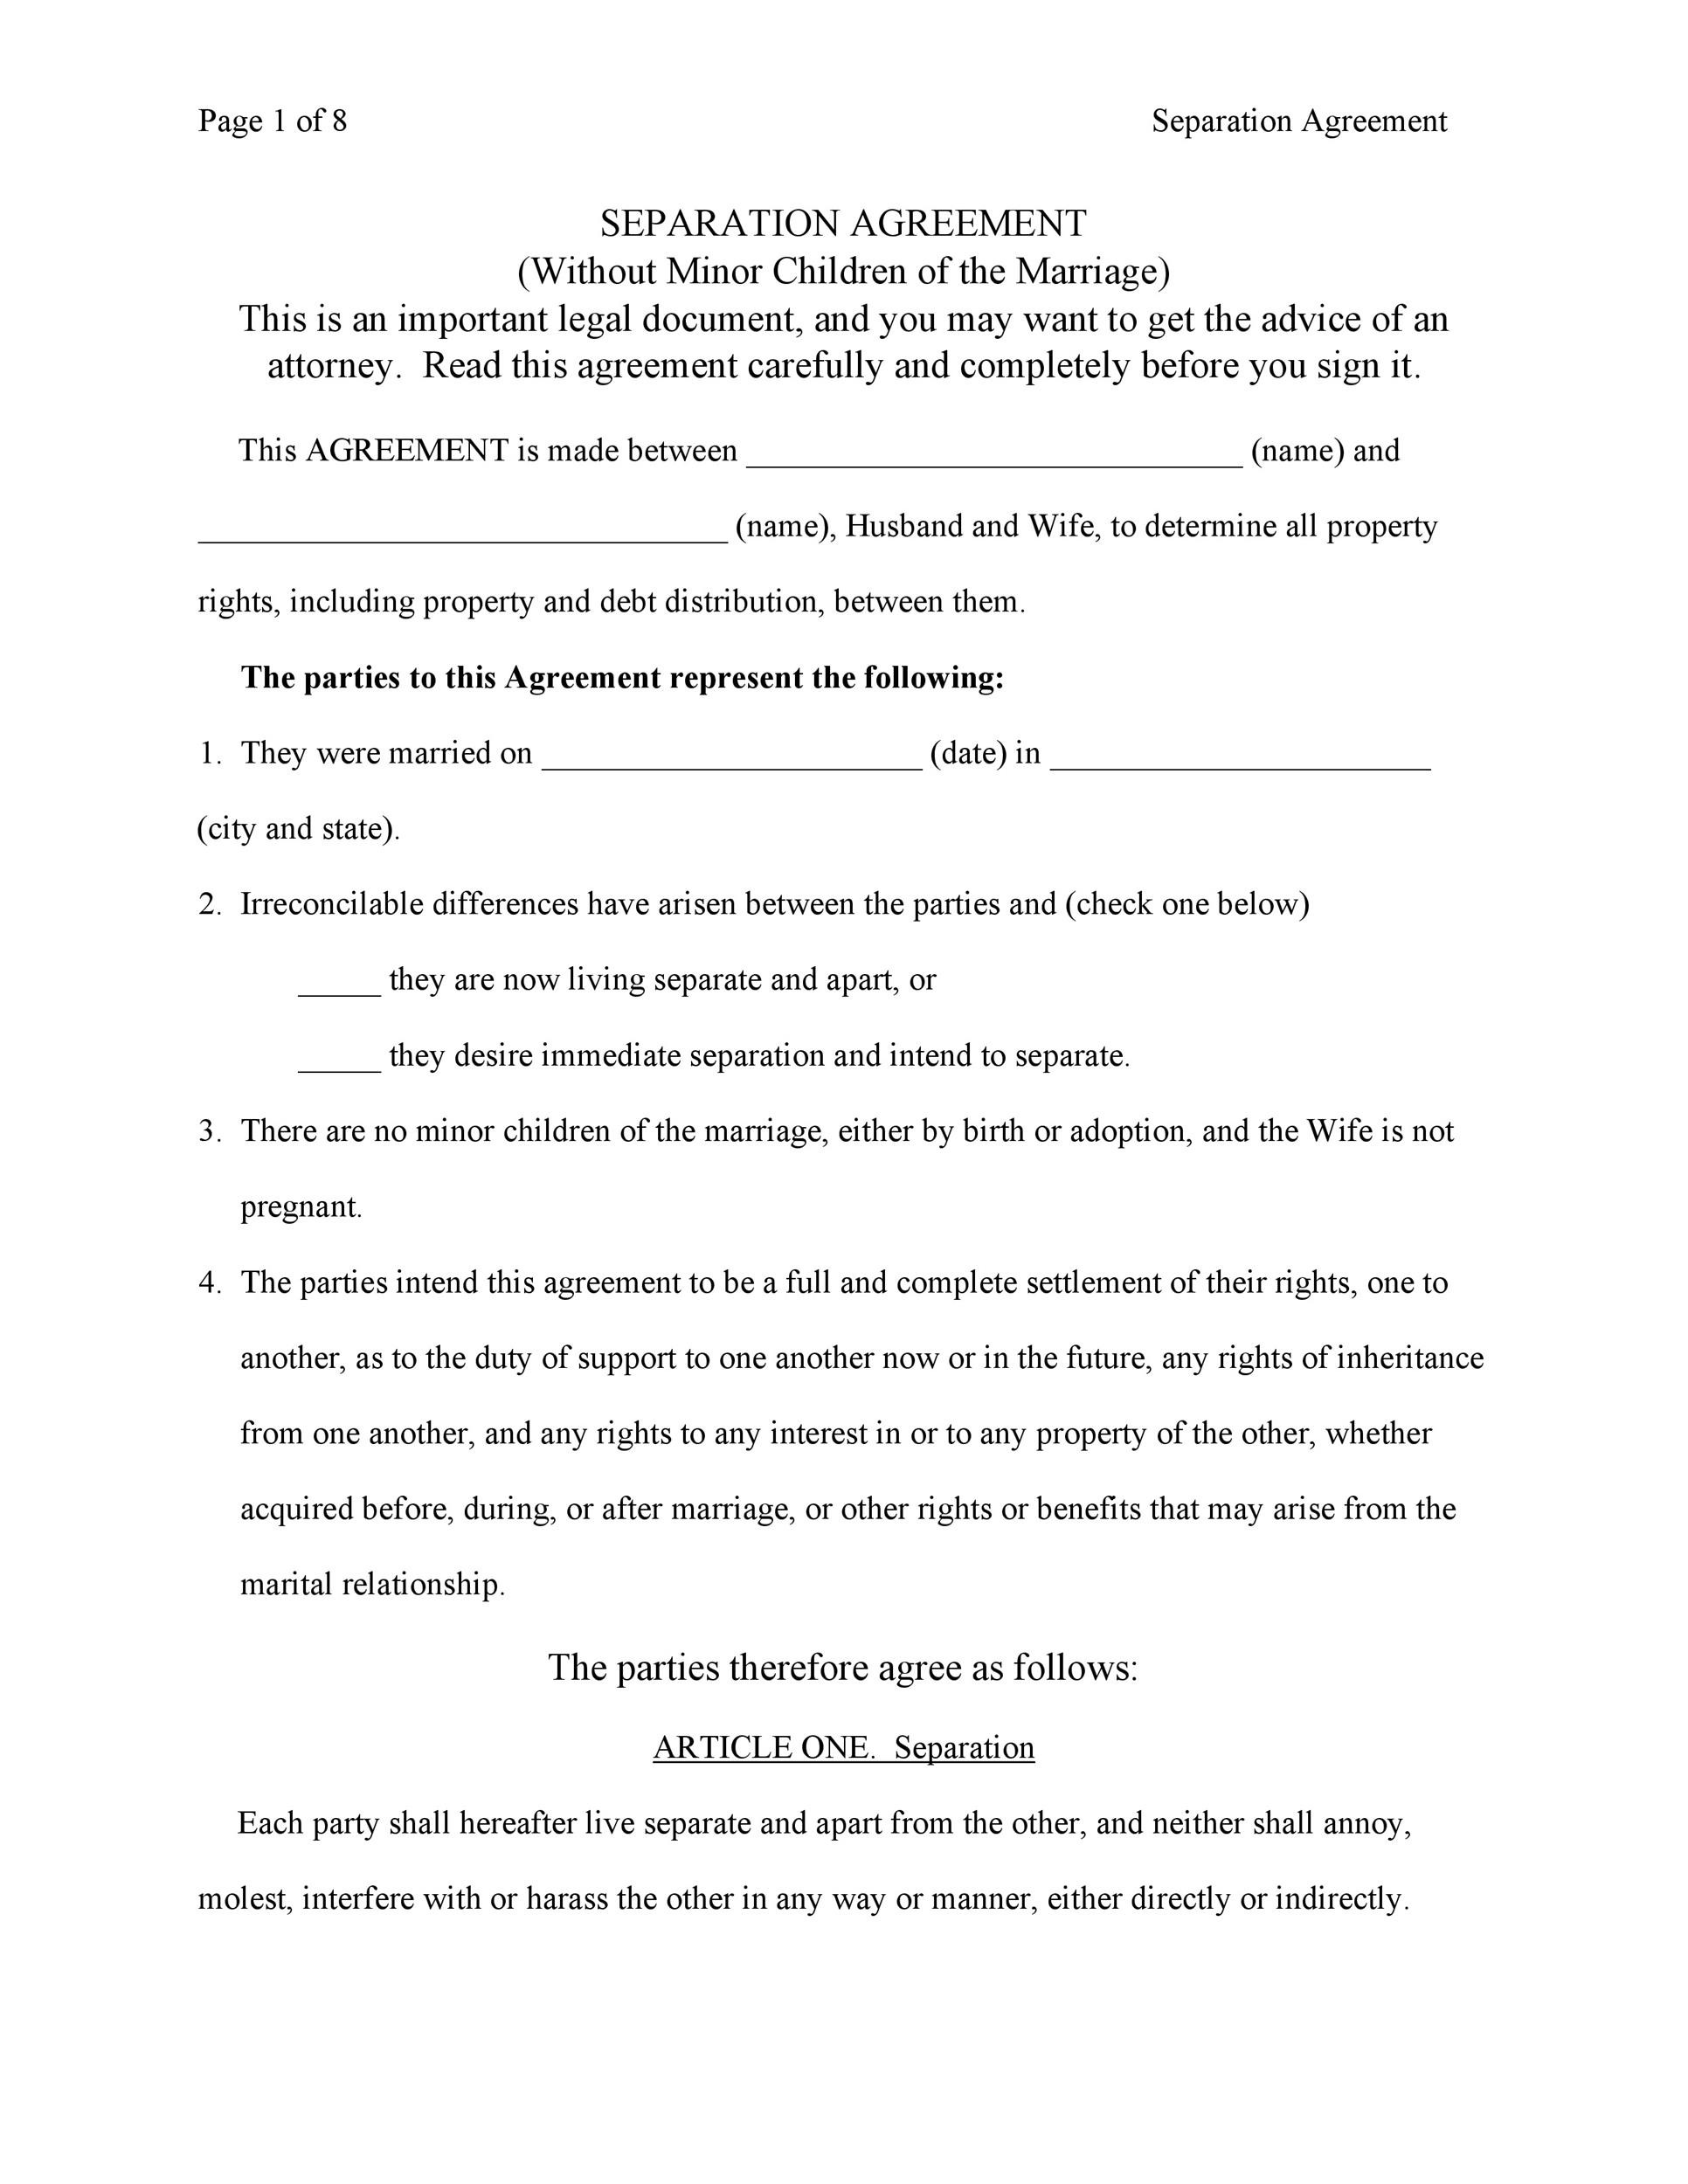 43 Official Separation Agreement Templates / Letters / Forms ᐅ